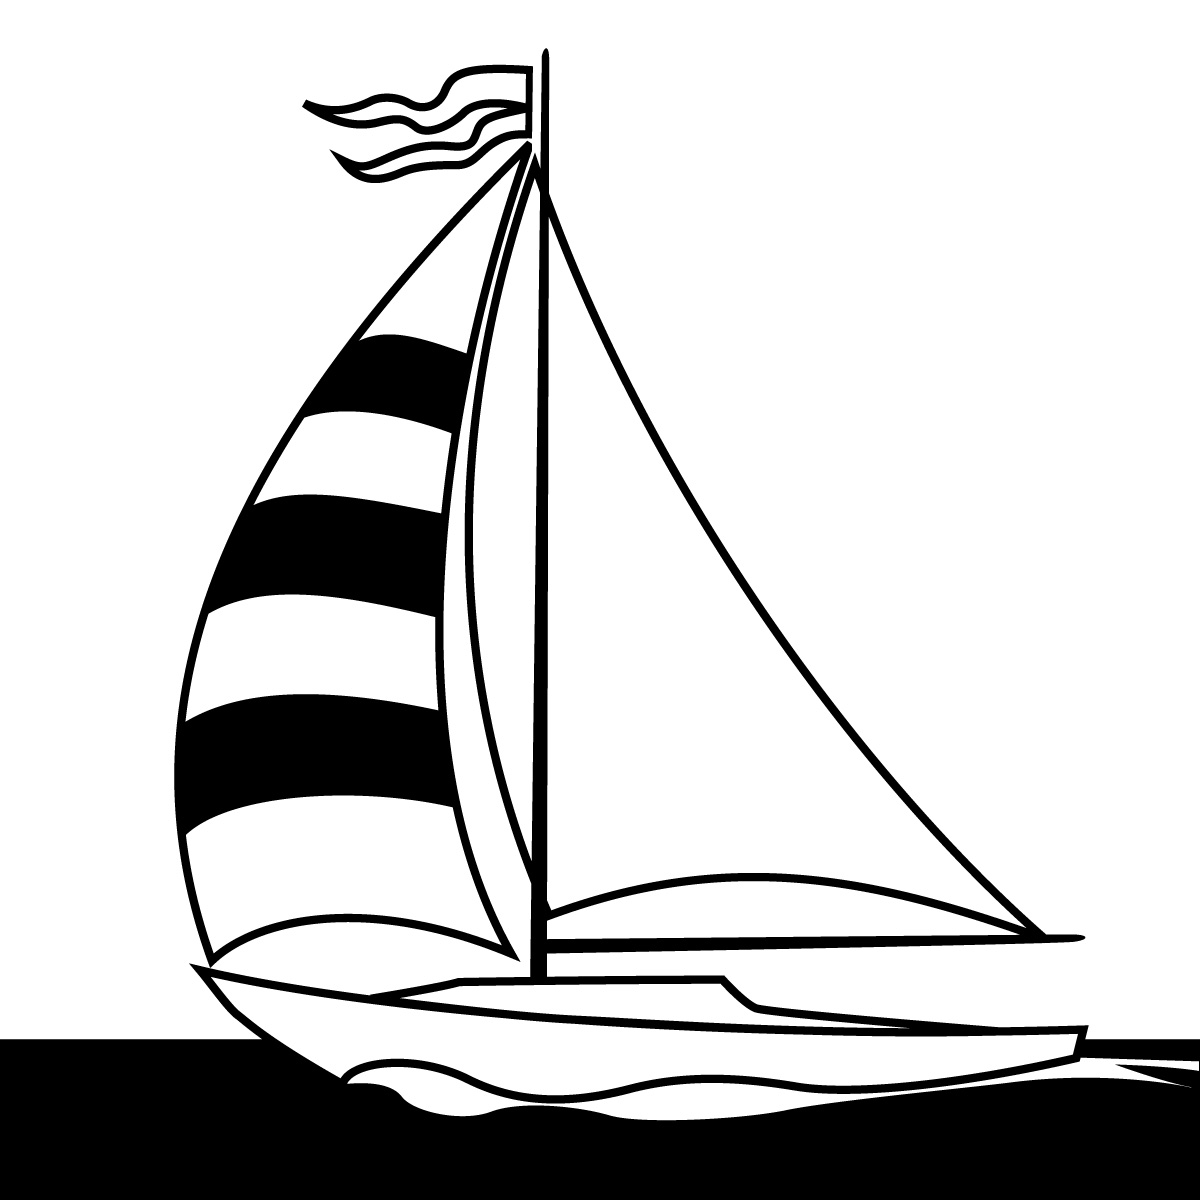 Sailboats clipart 3.